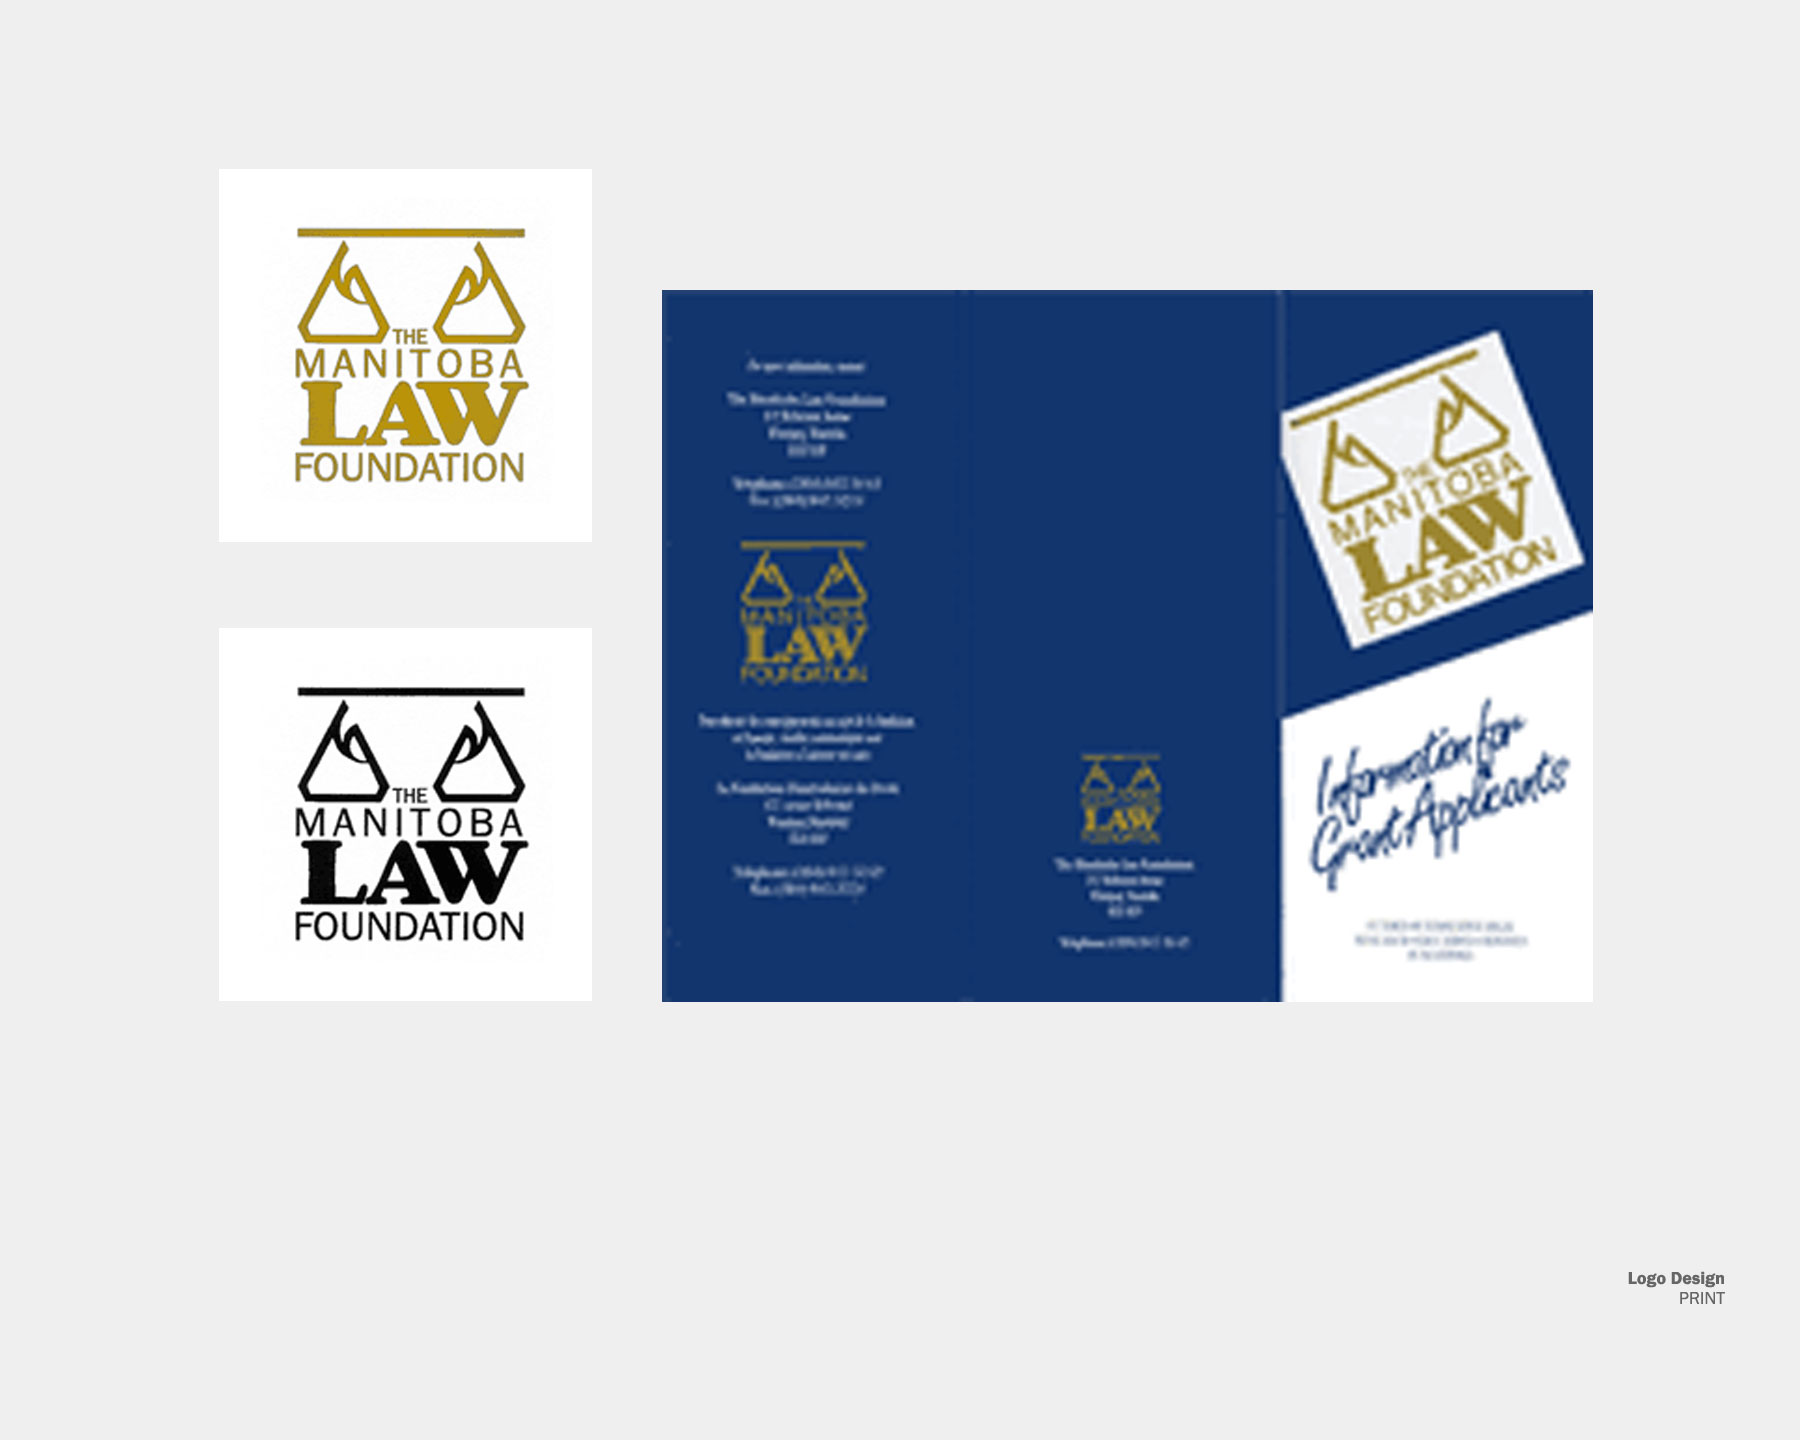 CMY-Print-logo-The-Manitoba-Law-Foundation